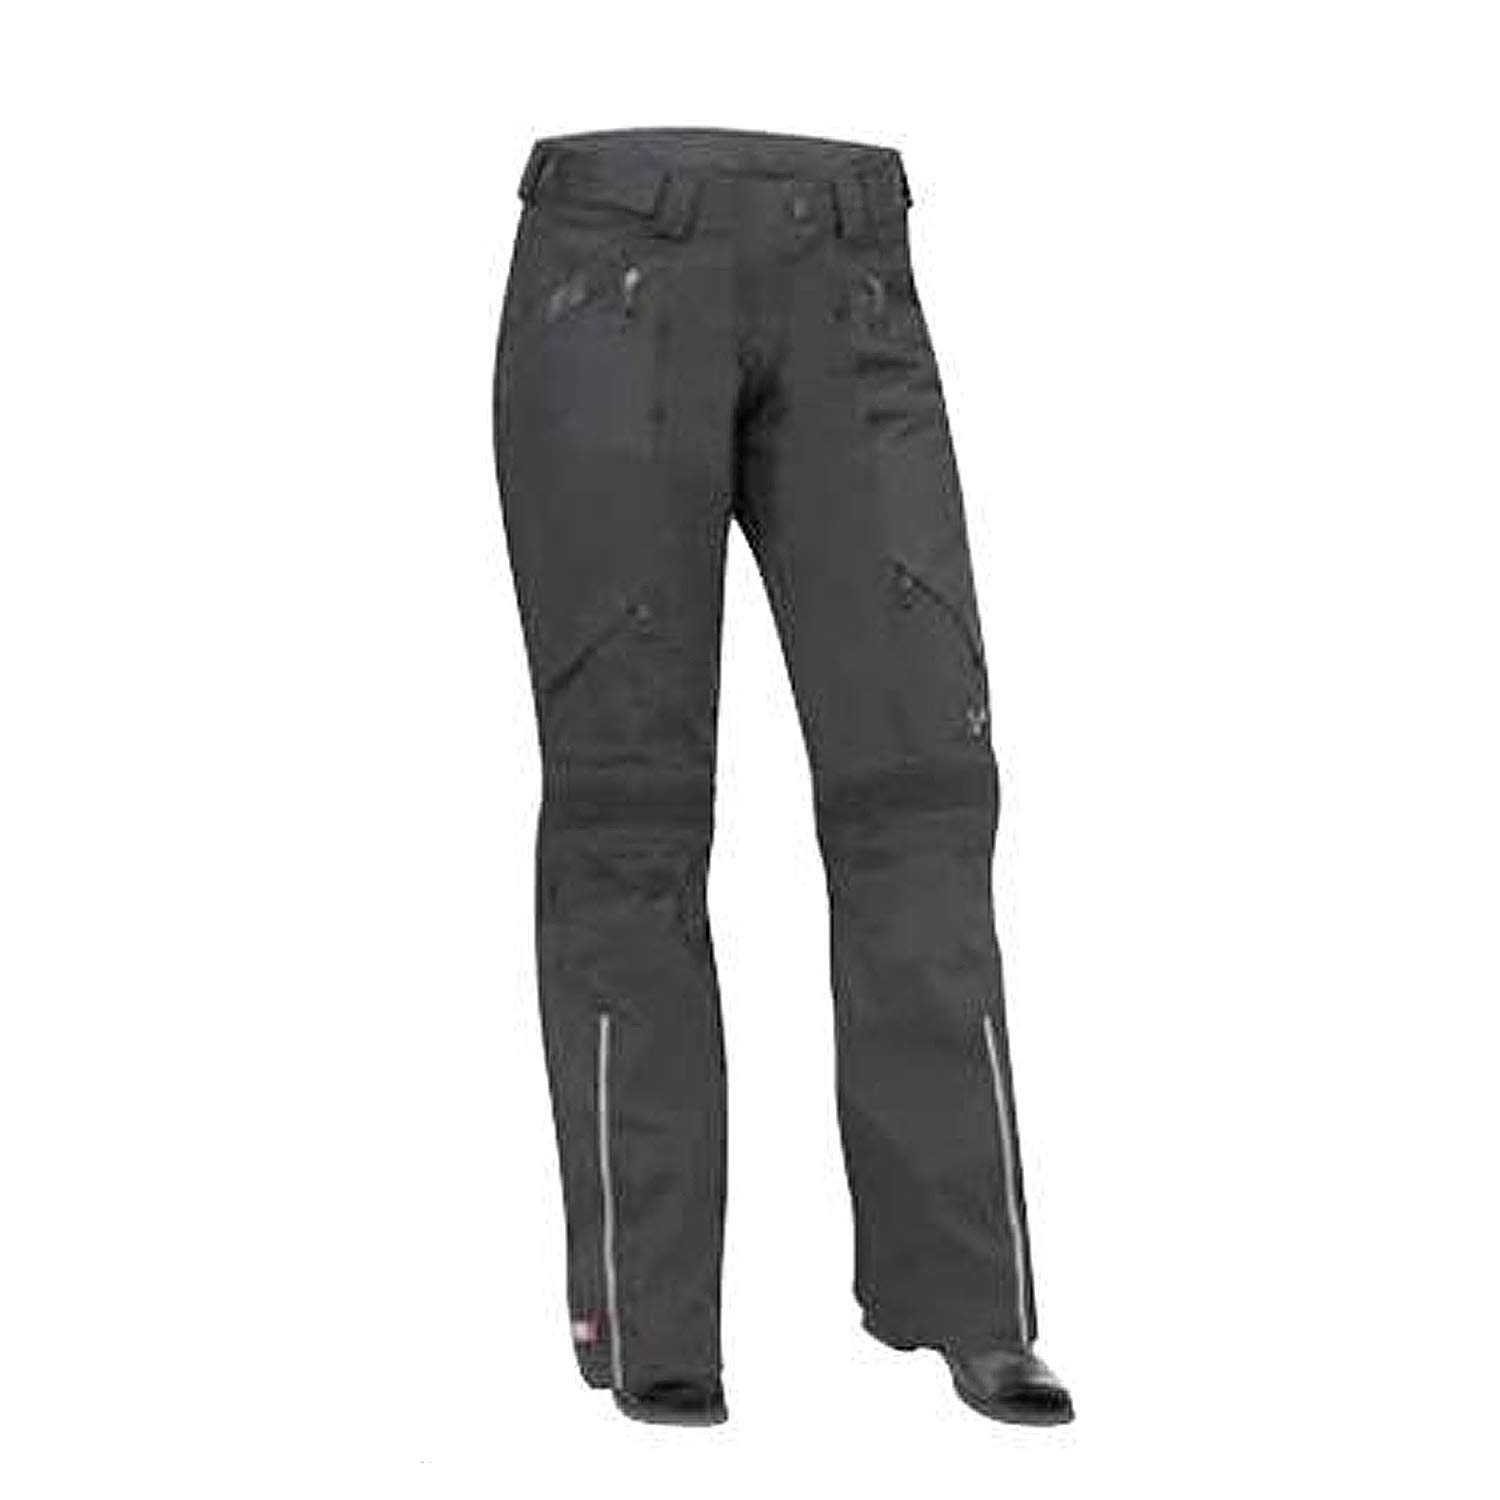 Can-Am Spyder New OEM Ladies Cruise Pants 14 Black, 4415123490